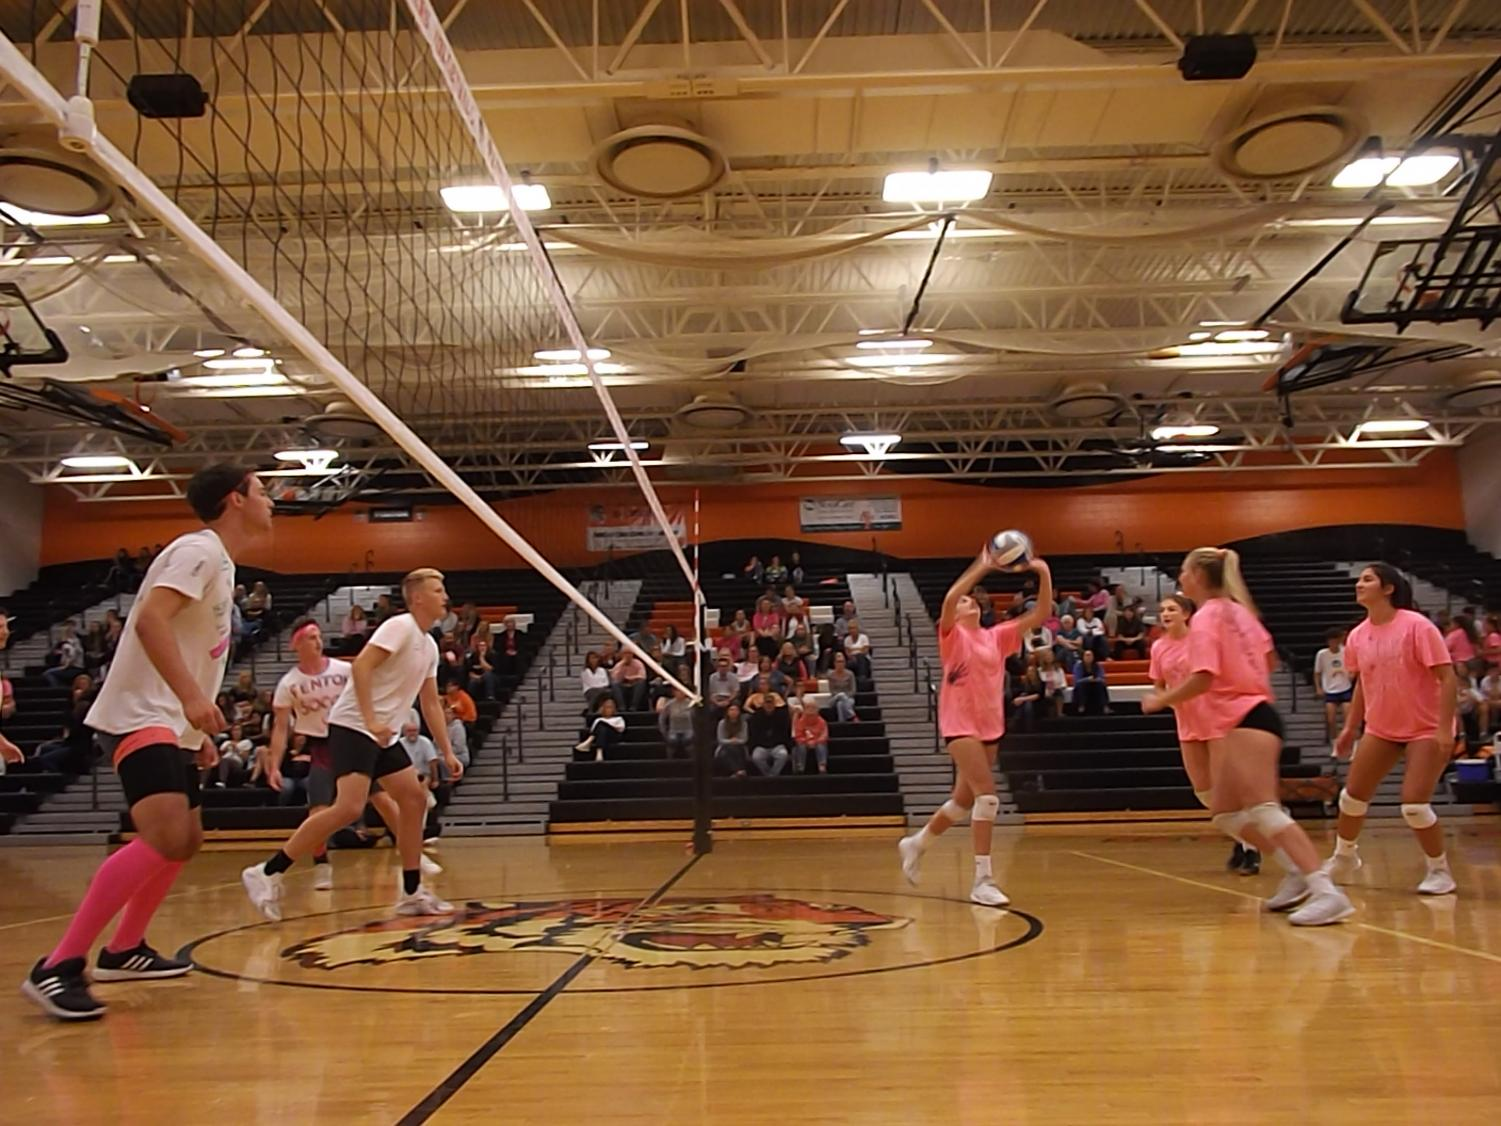 While junior Sydney Acho sets up the ball to middle hitter senior Erin Carter, the boys varsity soccer team watches on. The girls volleyball and boys soccer programs participated in Volley-4-a-cure fundraiser for the Negley family.